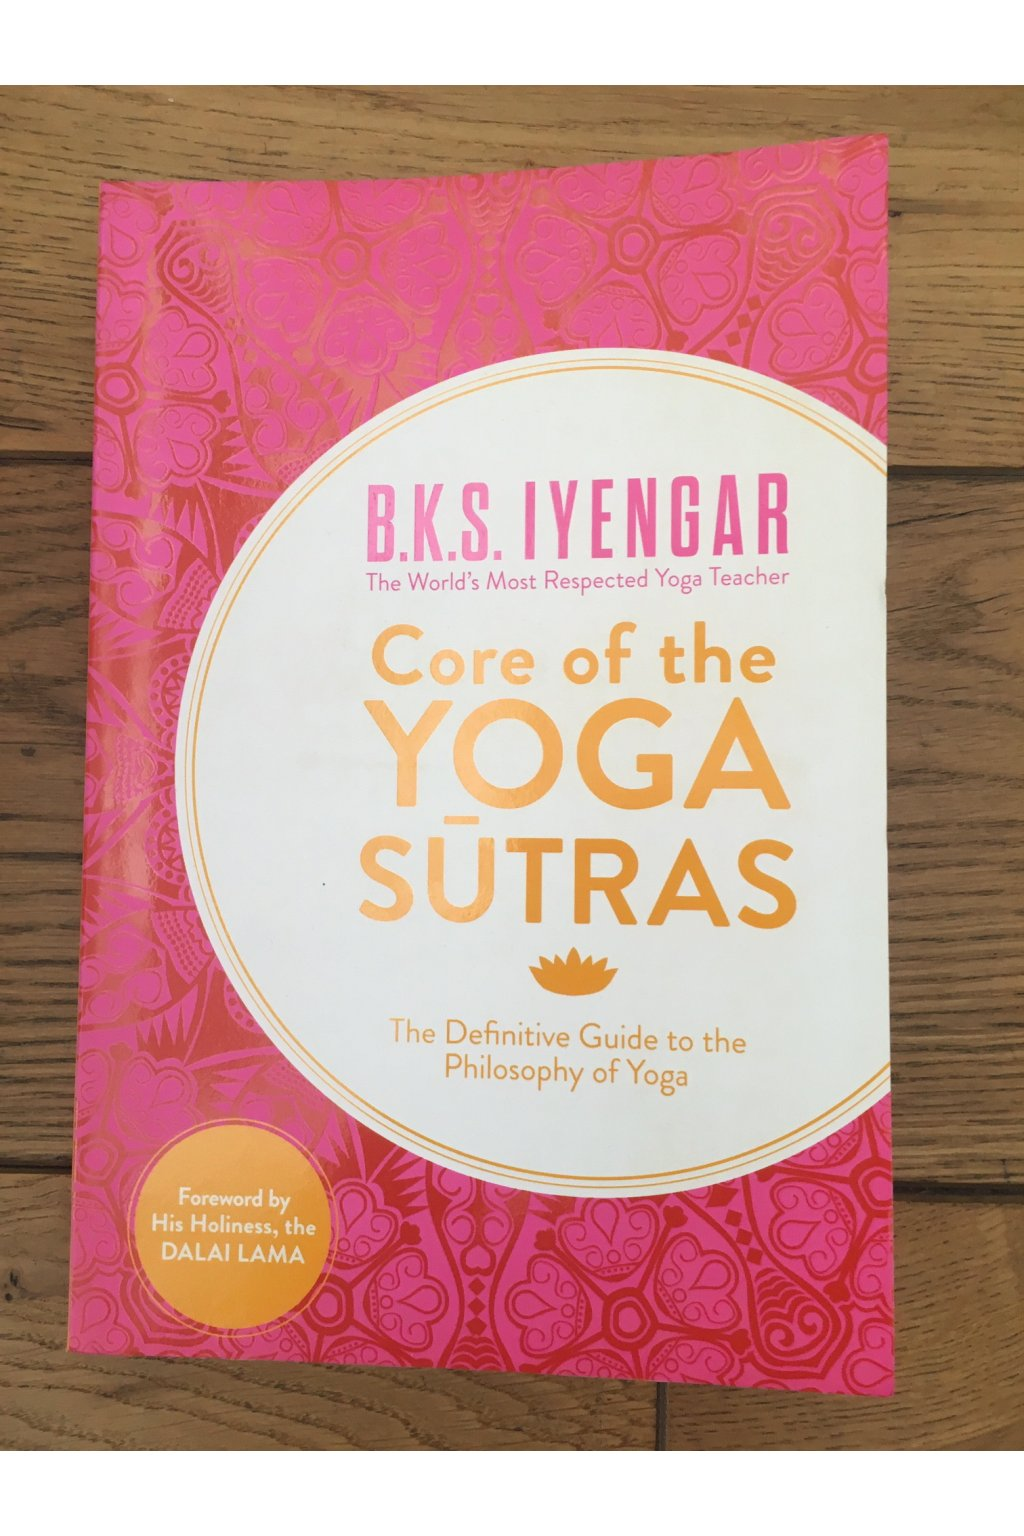 Core_of_the_Yoga_Sutras